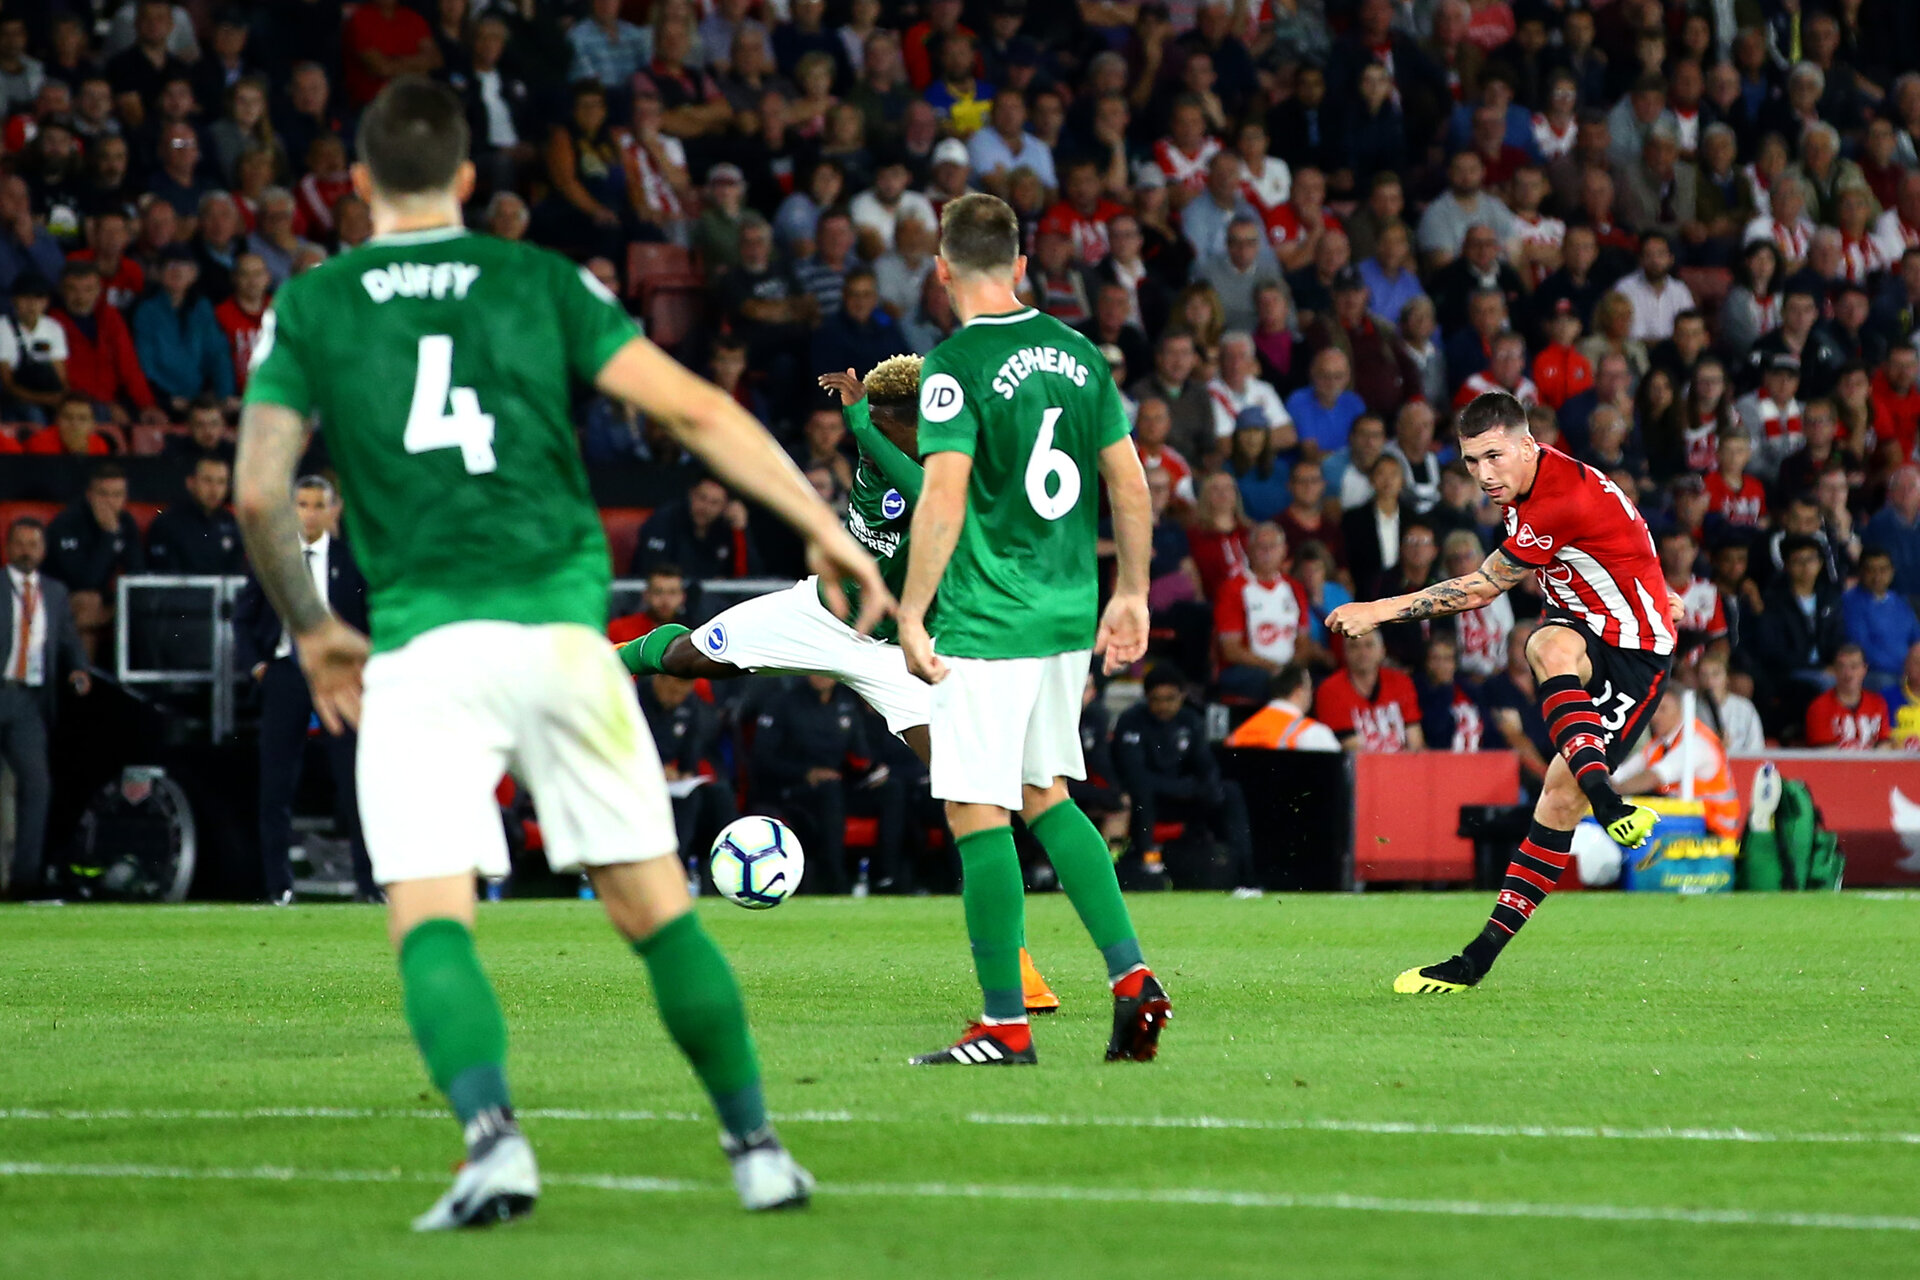 SOUTHAMPTON, ENGLAND - SEPTEMBER 17: Pierre-Emile Højbjerg (right) of Southampton FC  scores during the Premier League match between Southampton FC and Brighton & Hove Albion at St Mary's Stadium on September 17, 2018 in Southampton, United Kingdom. (Photo by James Bridle - Southampton FC/Southampton FC via Getty Images)